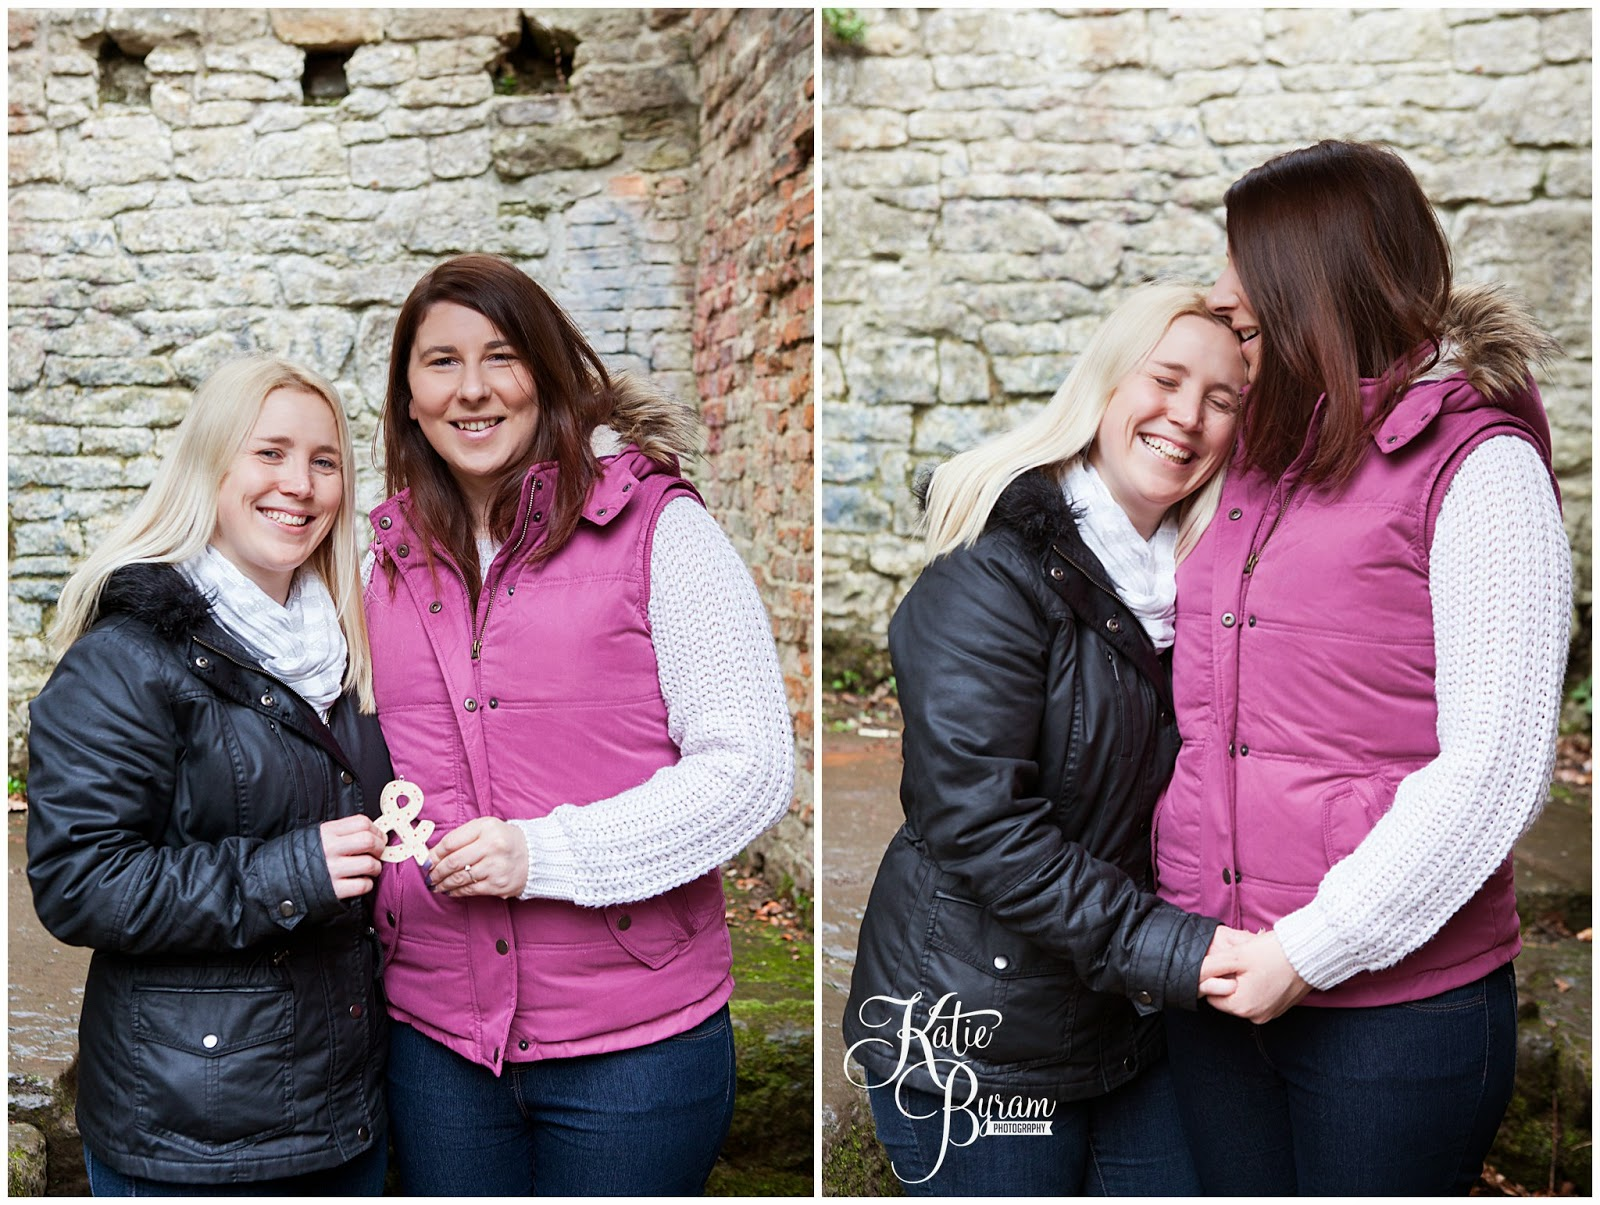 gay wedding, same-sex wedding, lesbian wedding, jesmond dene, newcastle wedding photographer, bride and bride, civil partnership, equal marriage, engagement shoot, same-sex couples photos, same-sex engagement, lesbian engagement, katie byram photography